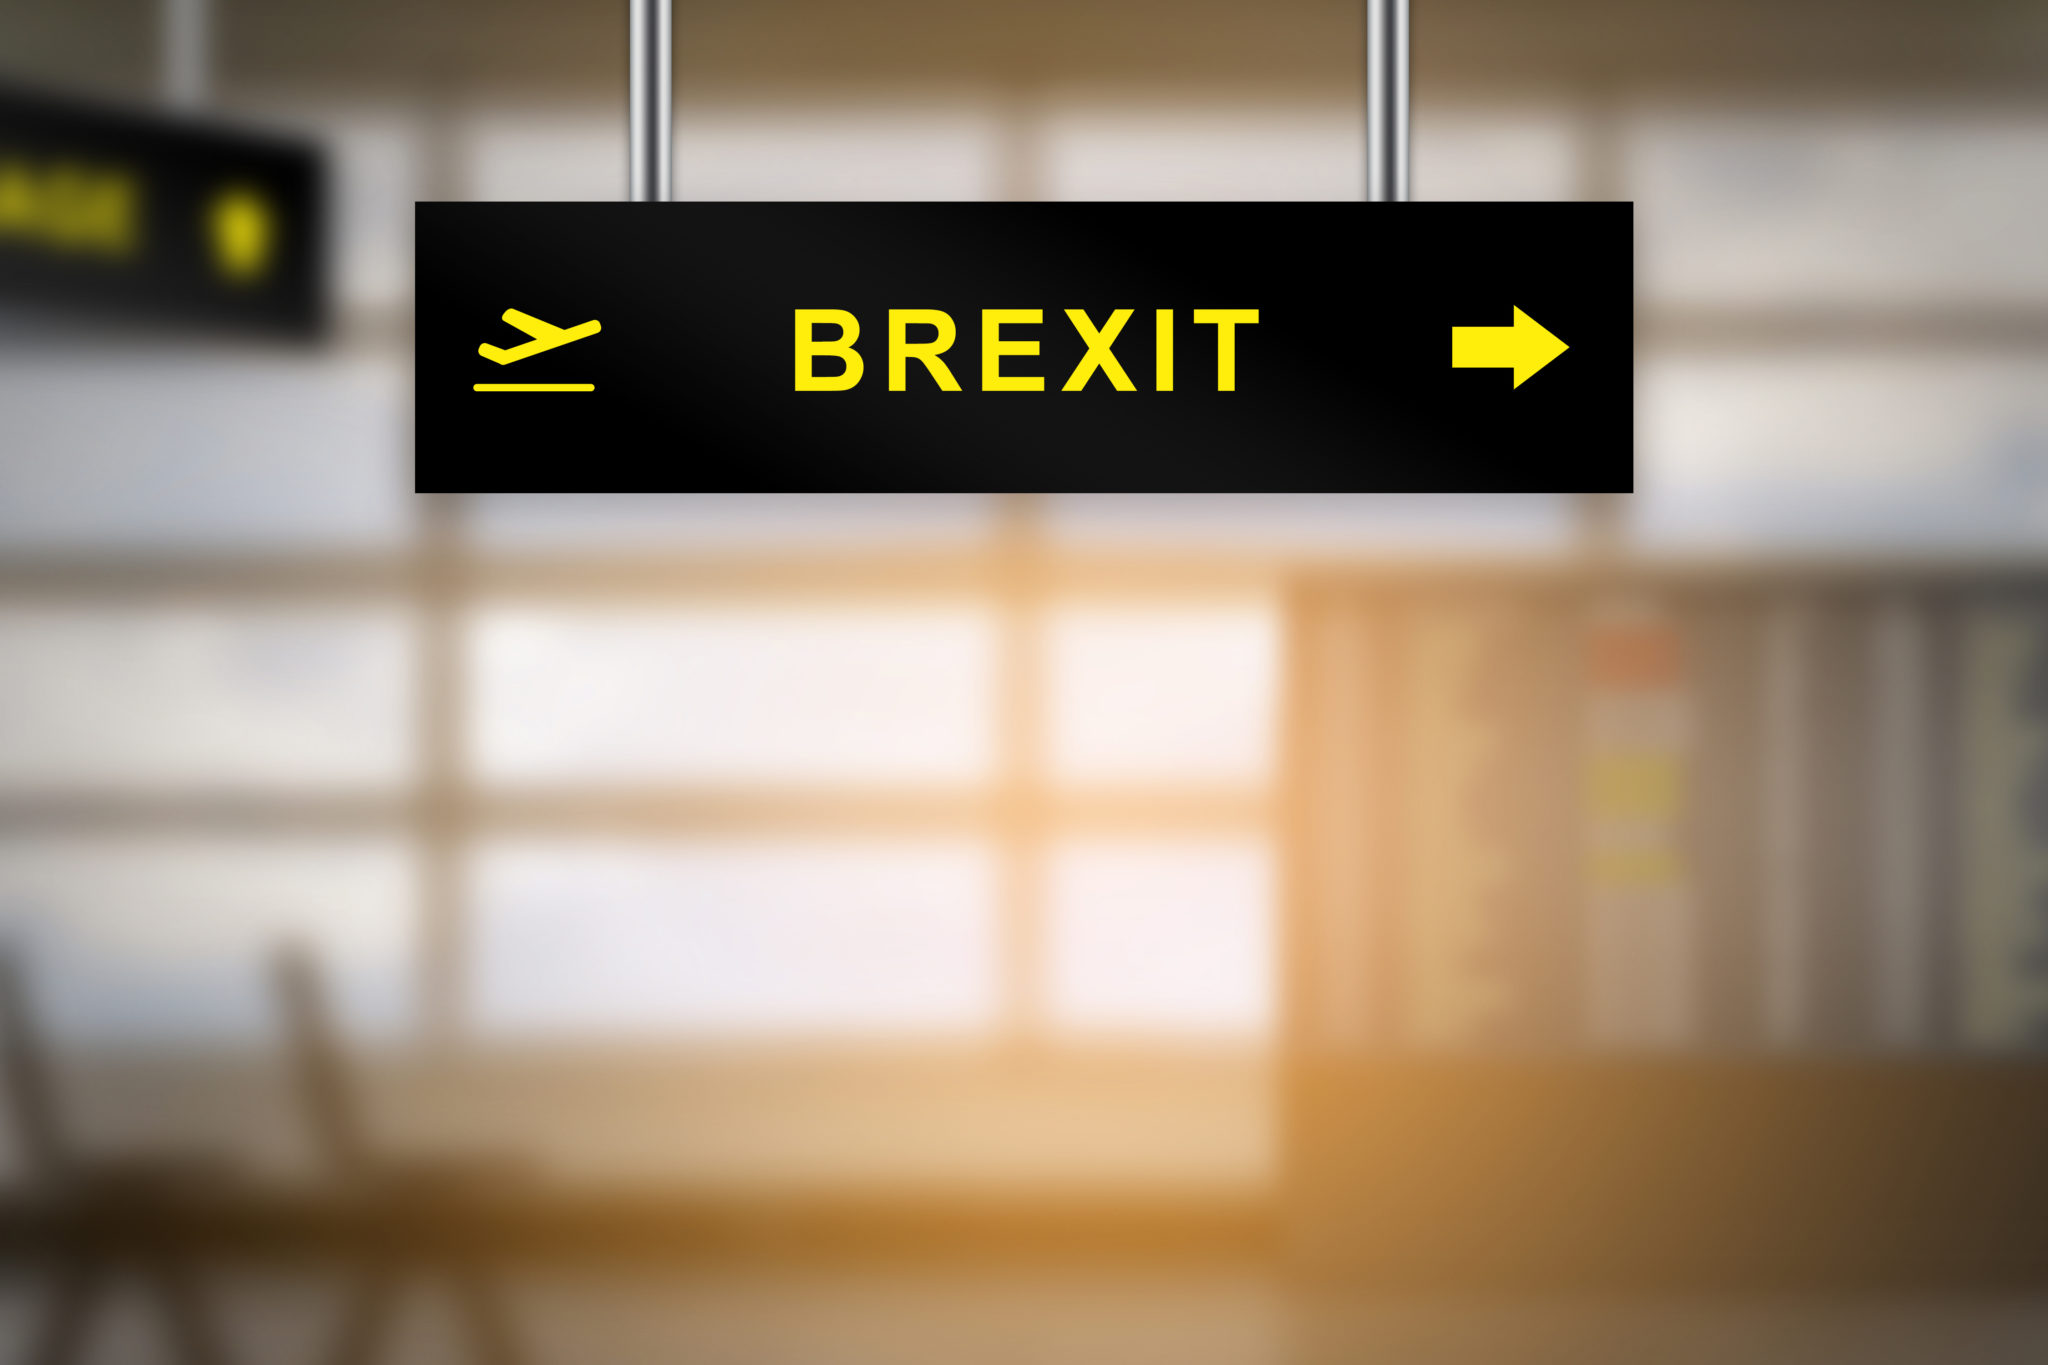 https://s3.amazonaws.com/runwaygirl-production/wp-content/uploads/2016/07/Brexit-Airport.jpg